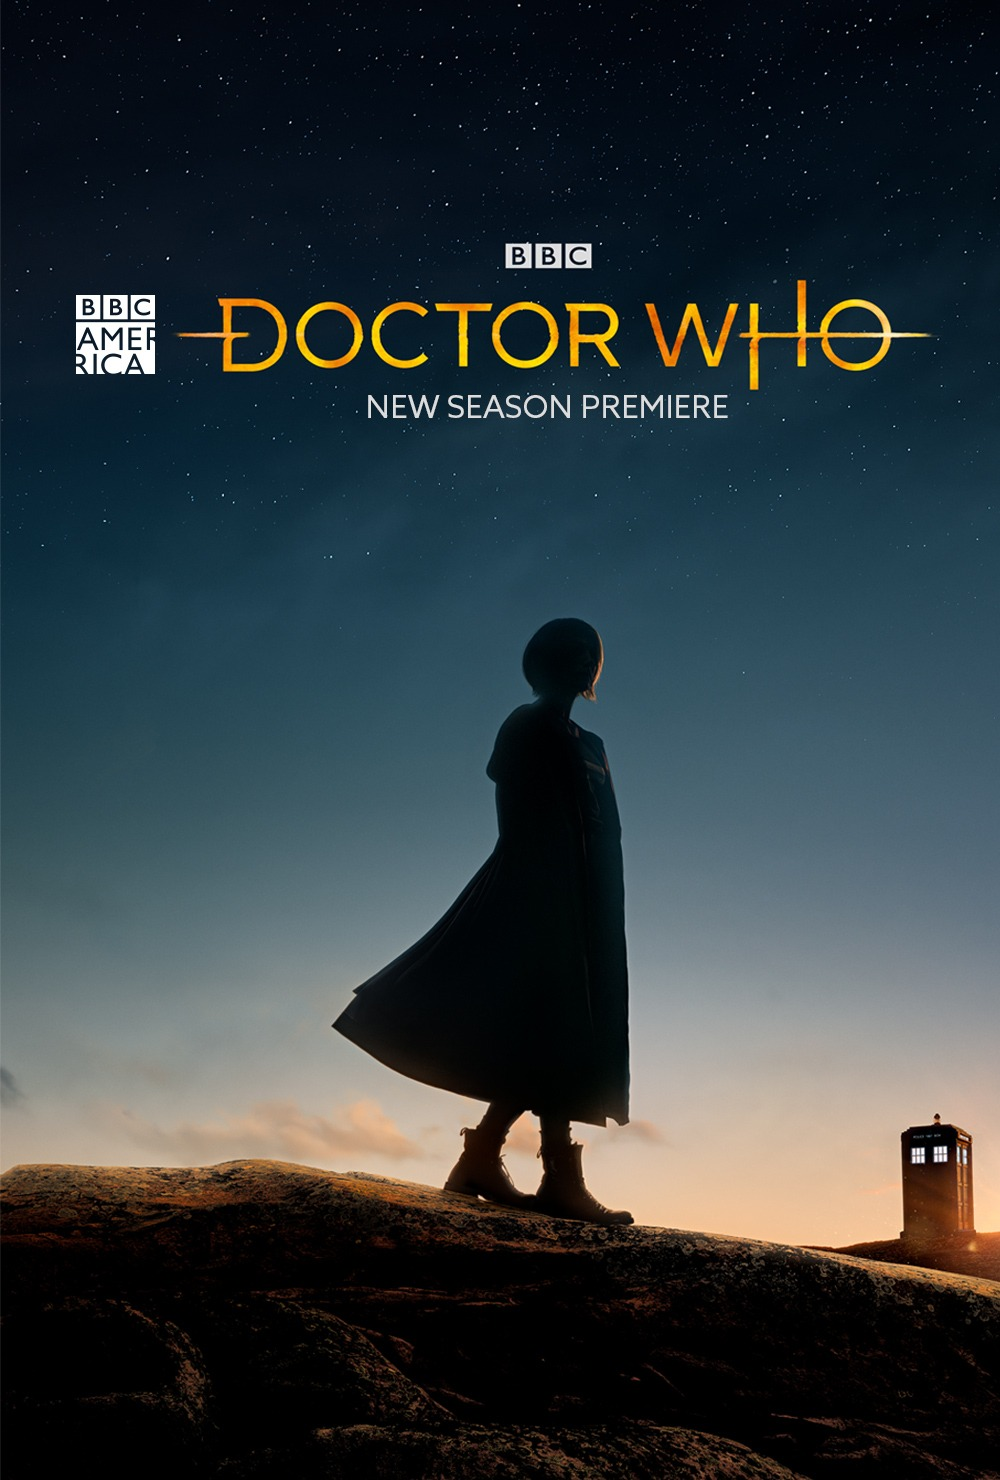 Doctor Who New Season Premiere